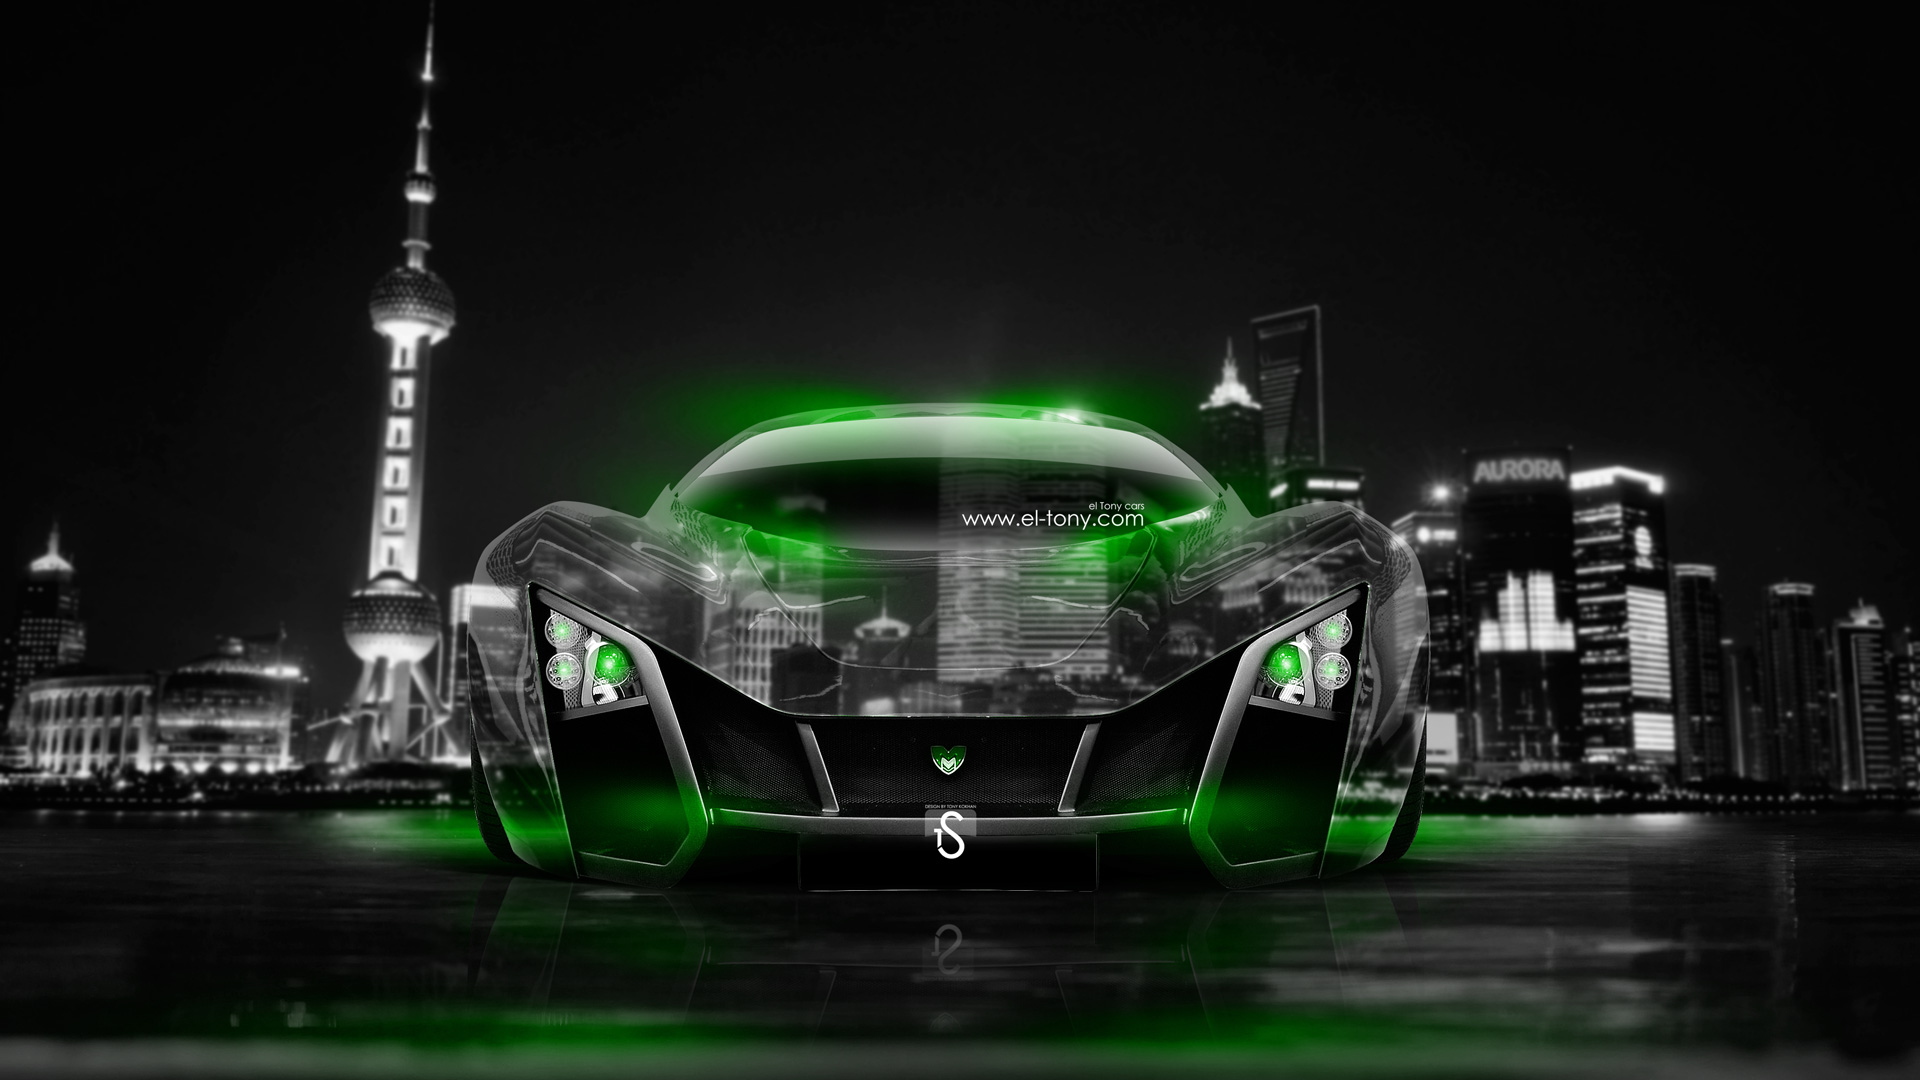 Marussia Russian Crystal City Car 2014 Green Neon